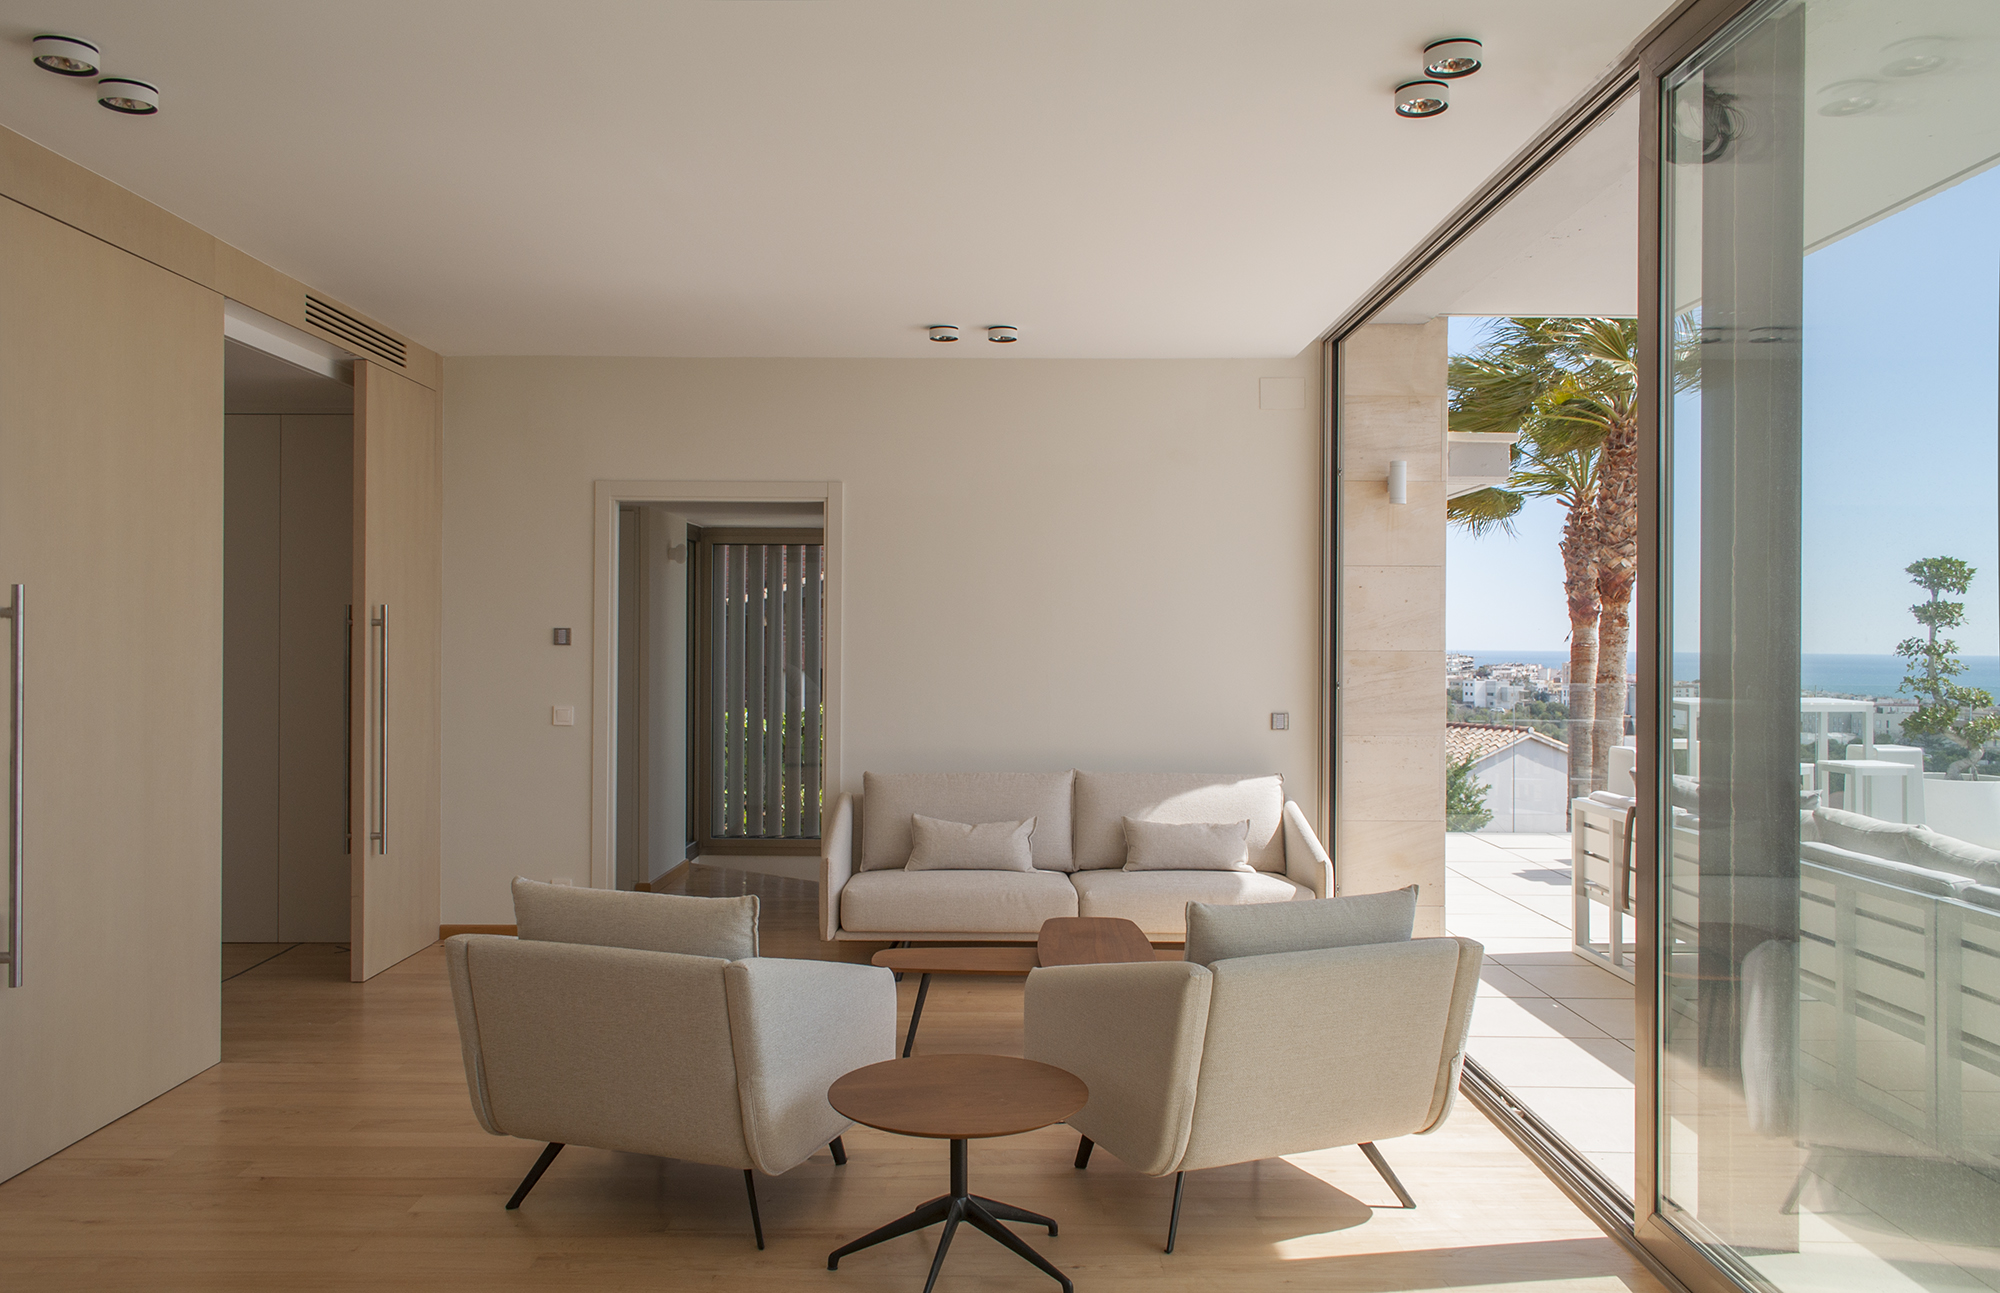 19-rardo-architects-houses-in-sitges-interior-design-living-dining-room-sea-view-sofa